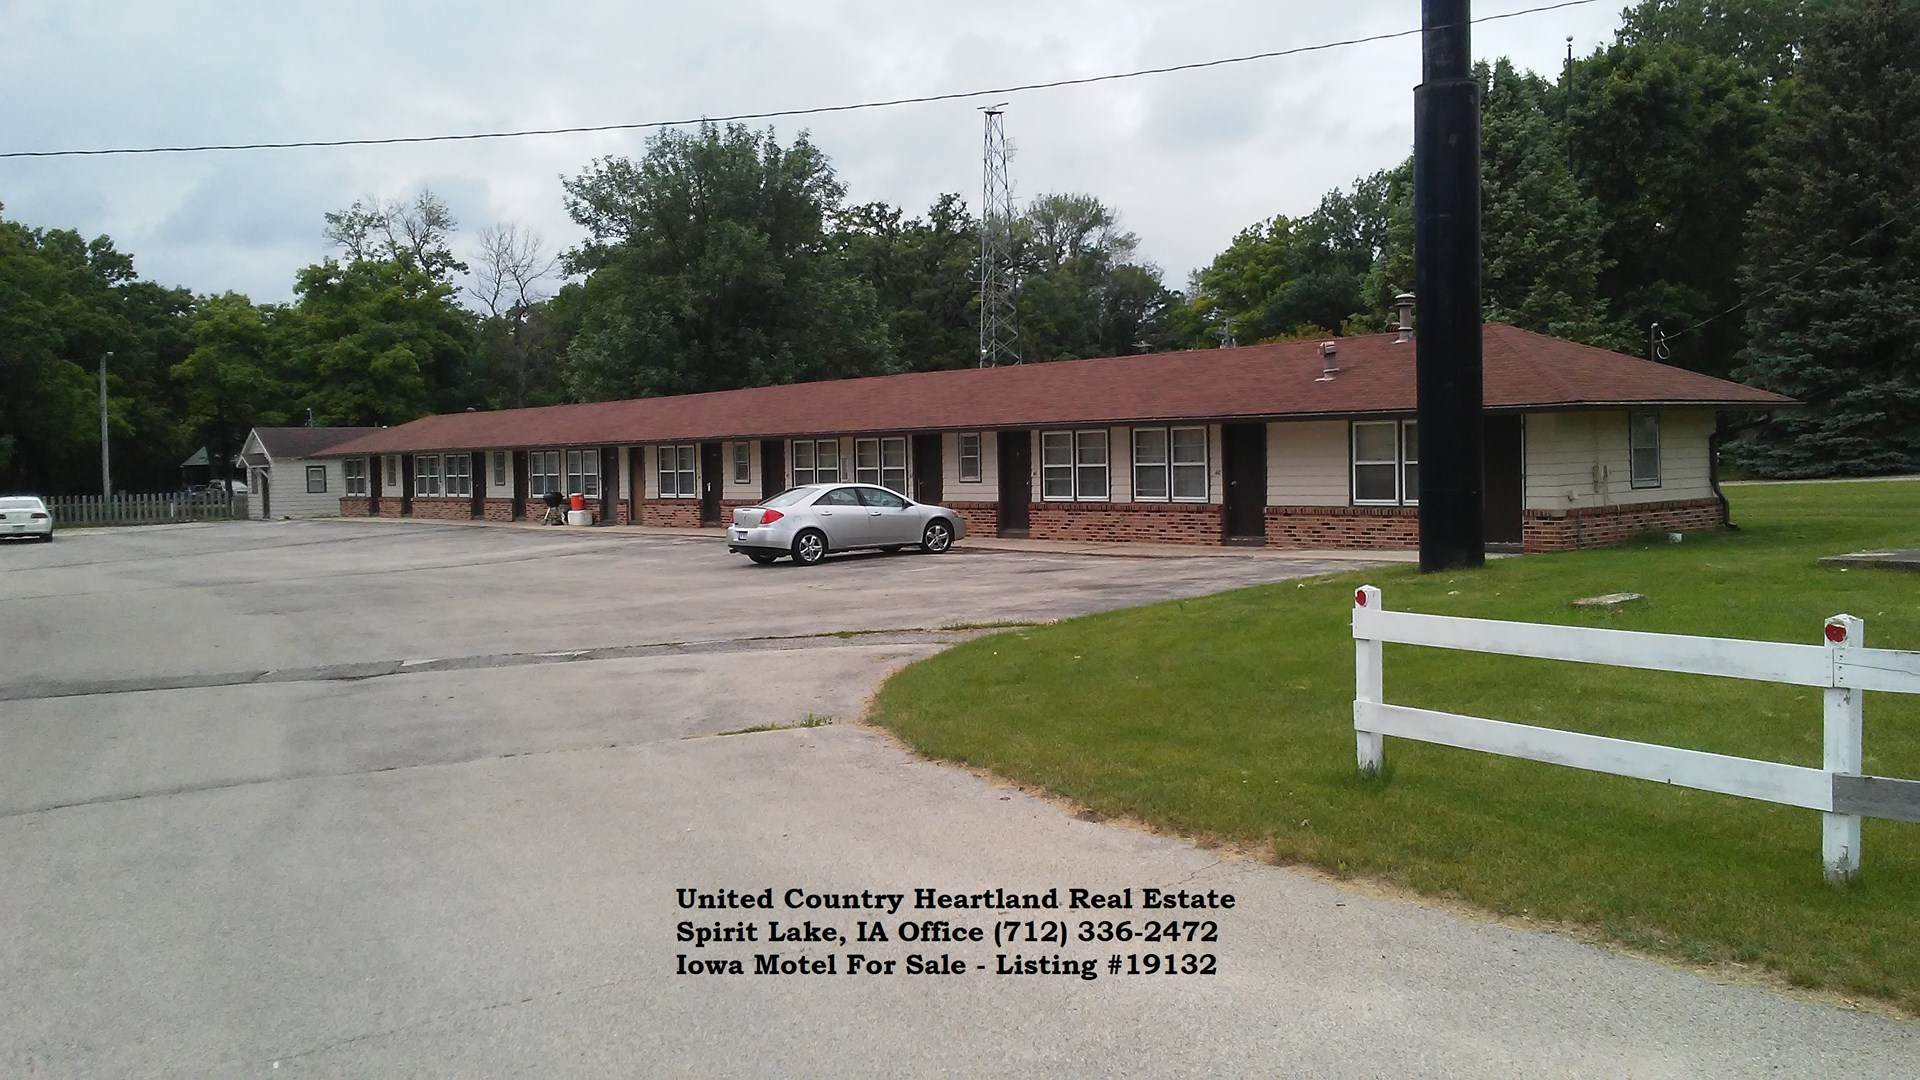 Eastern IA Motel For Sale